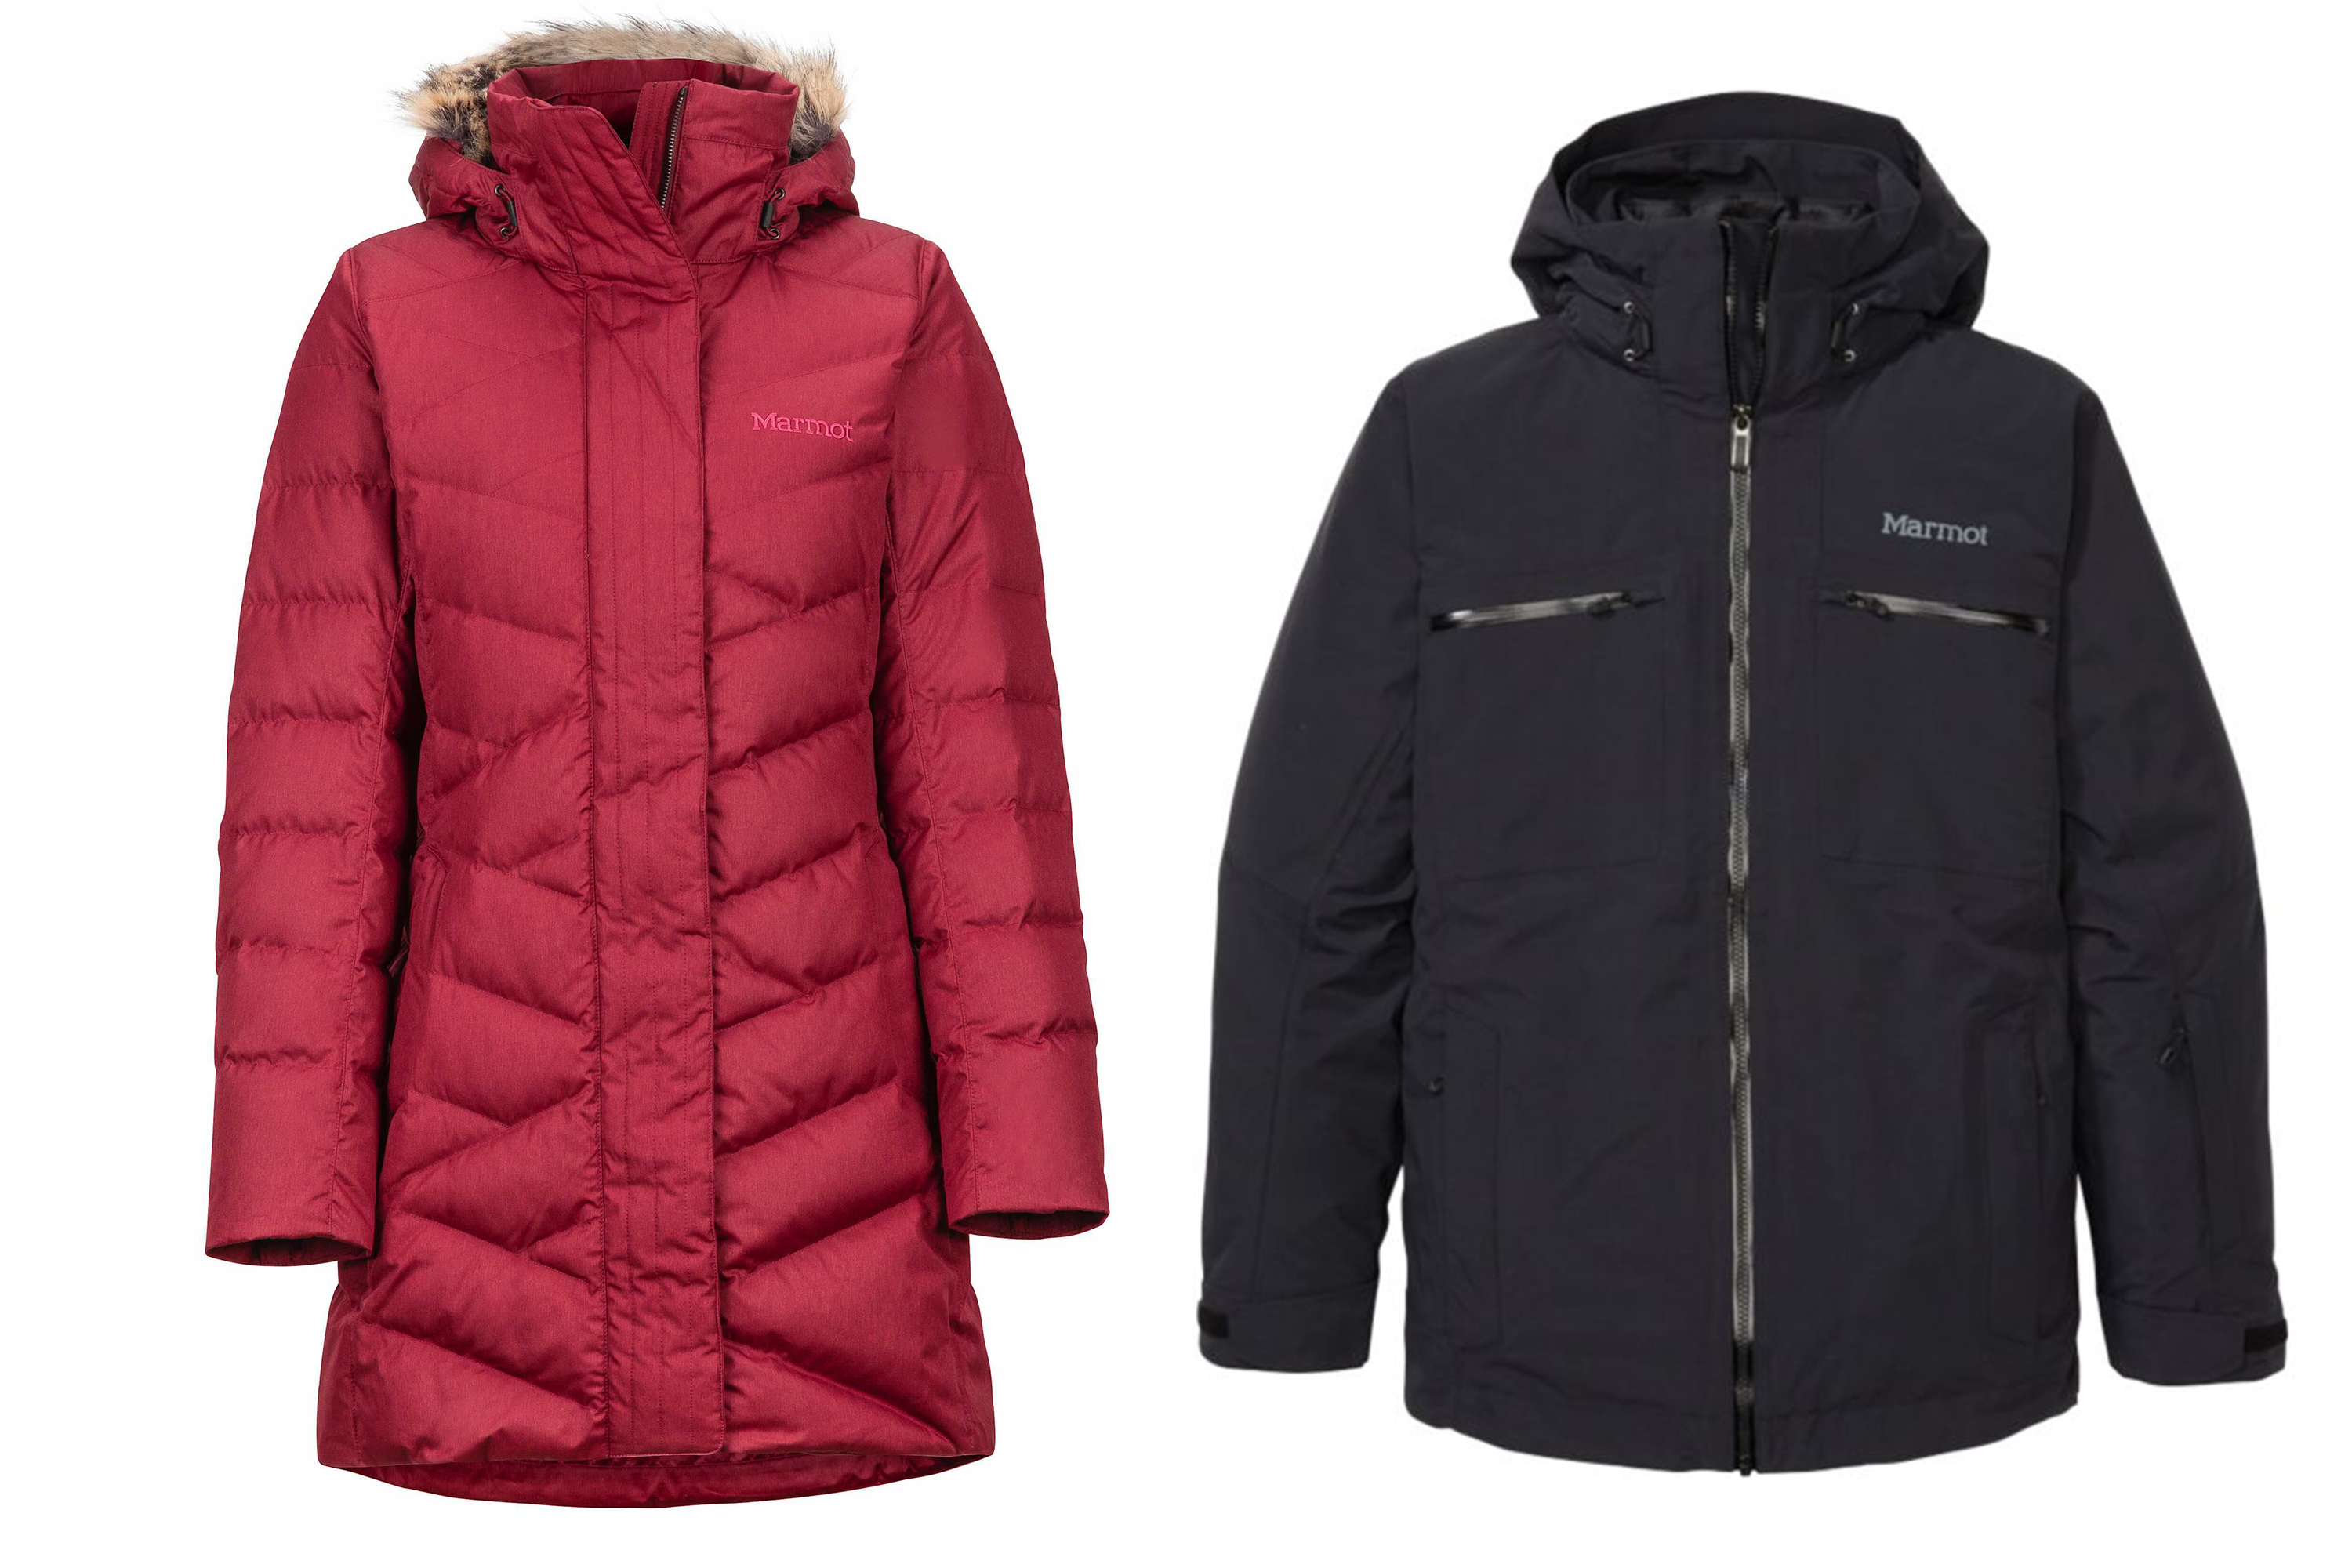 Marmot-Varma-Toro-winter-jackets